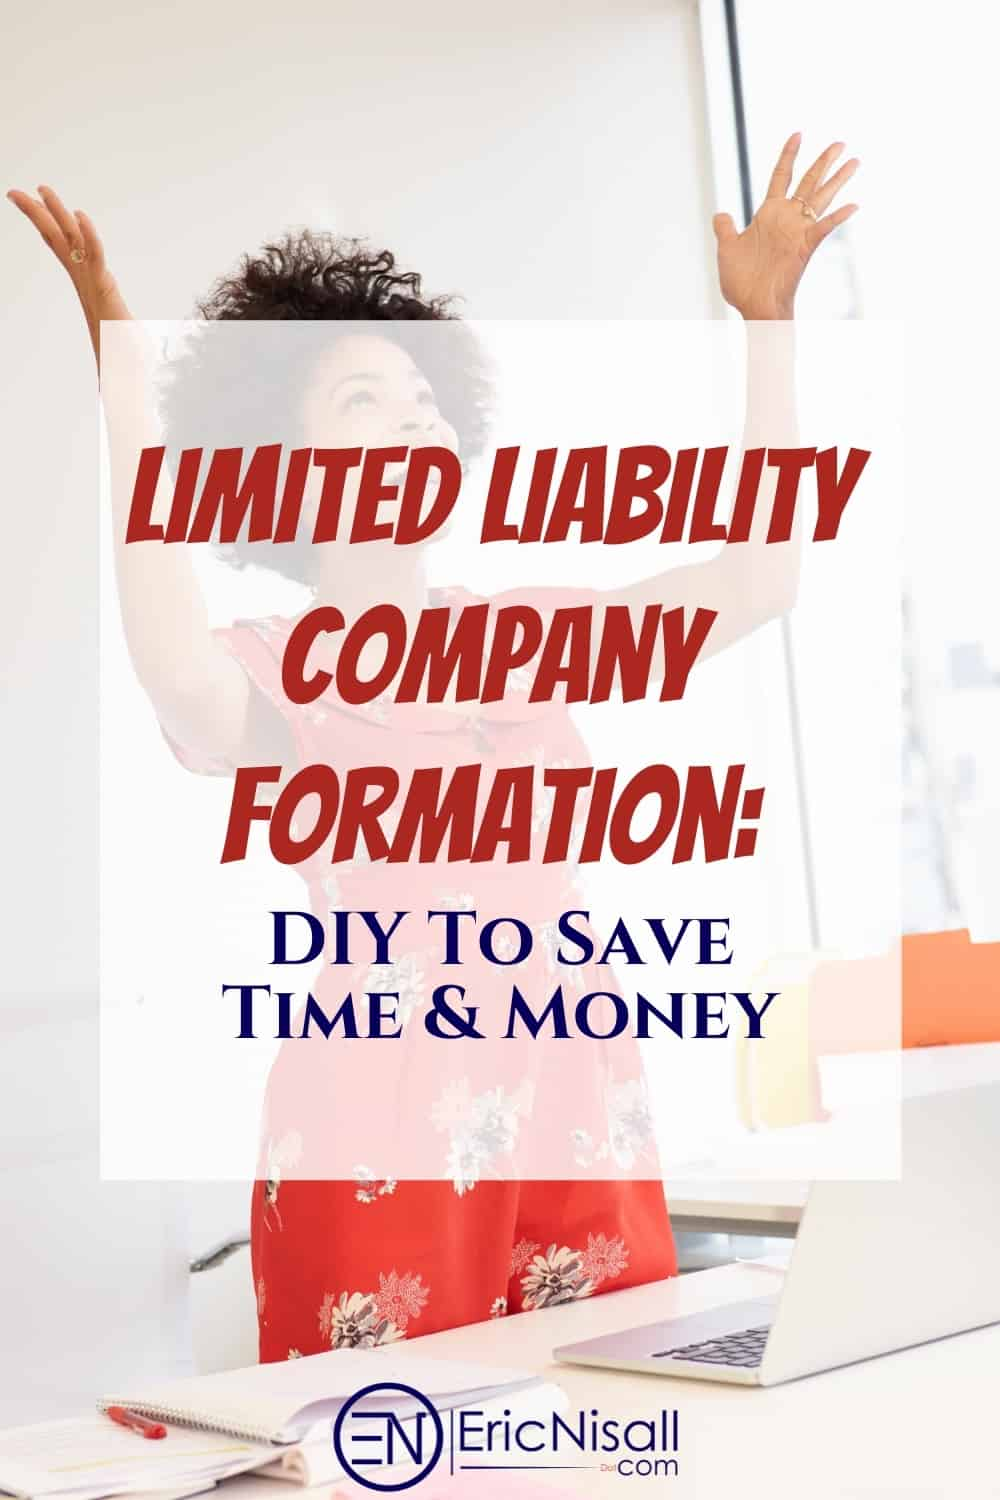 Having an attorney or incorporation service set up your Limited Liability Company (LLC) is expensive and time-consuming. I'll show you how easy it is to do it yourself and save a bunch of money, plus explain why you have to pay close attention to your tax situation. There's even a handy map that will take you right where you need to go to do it in each state. via @ericnisall